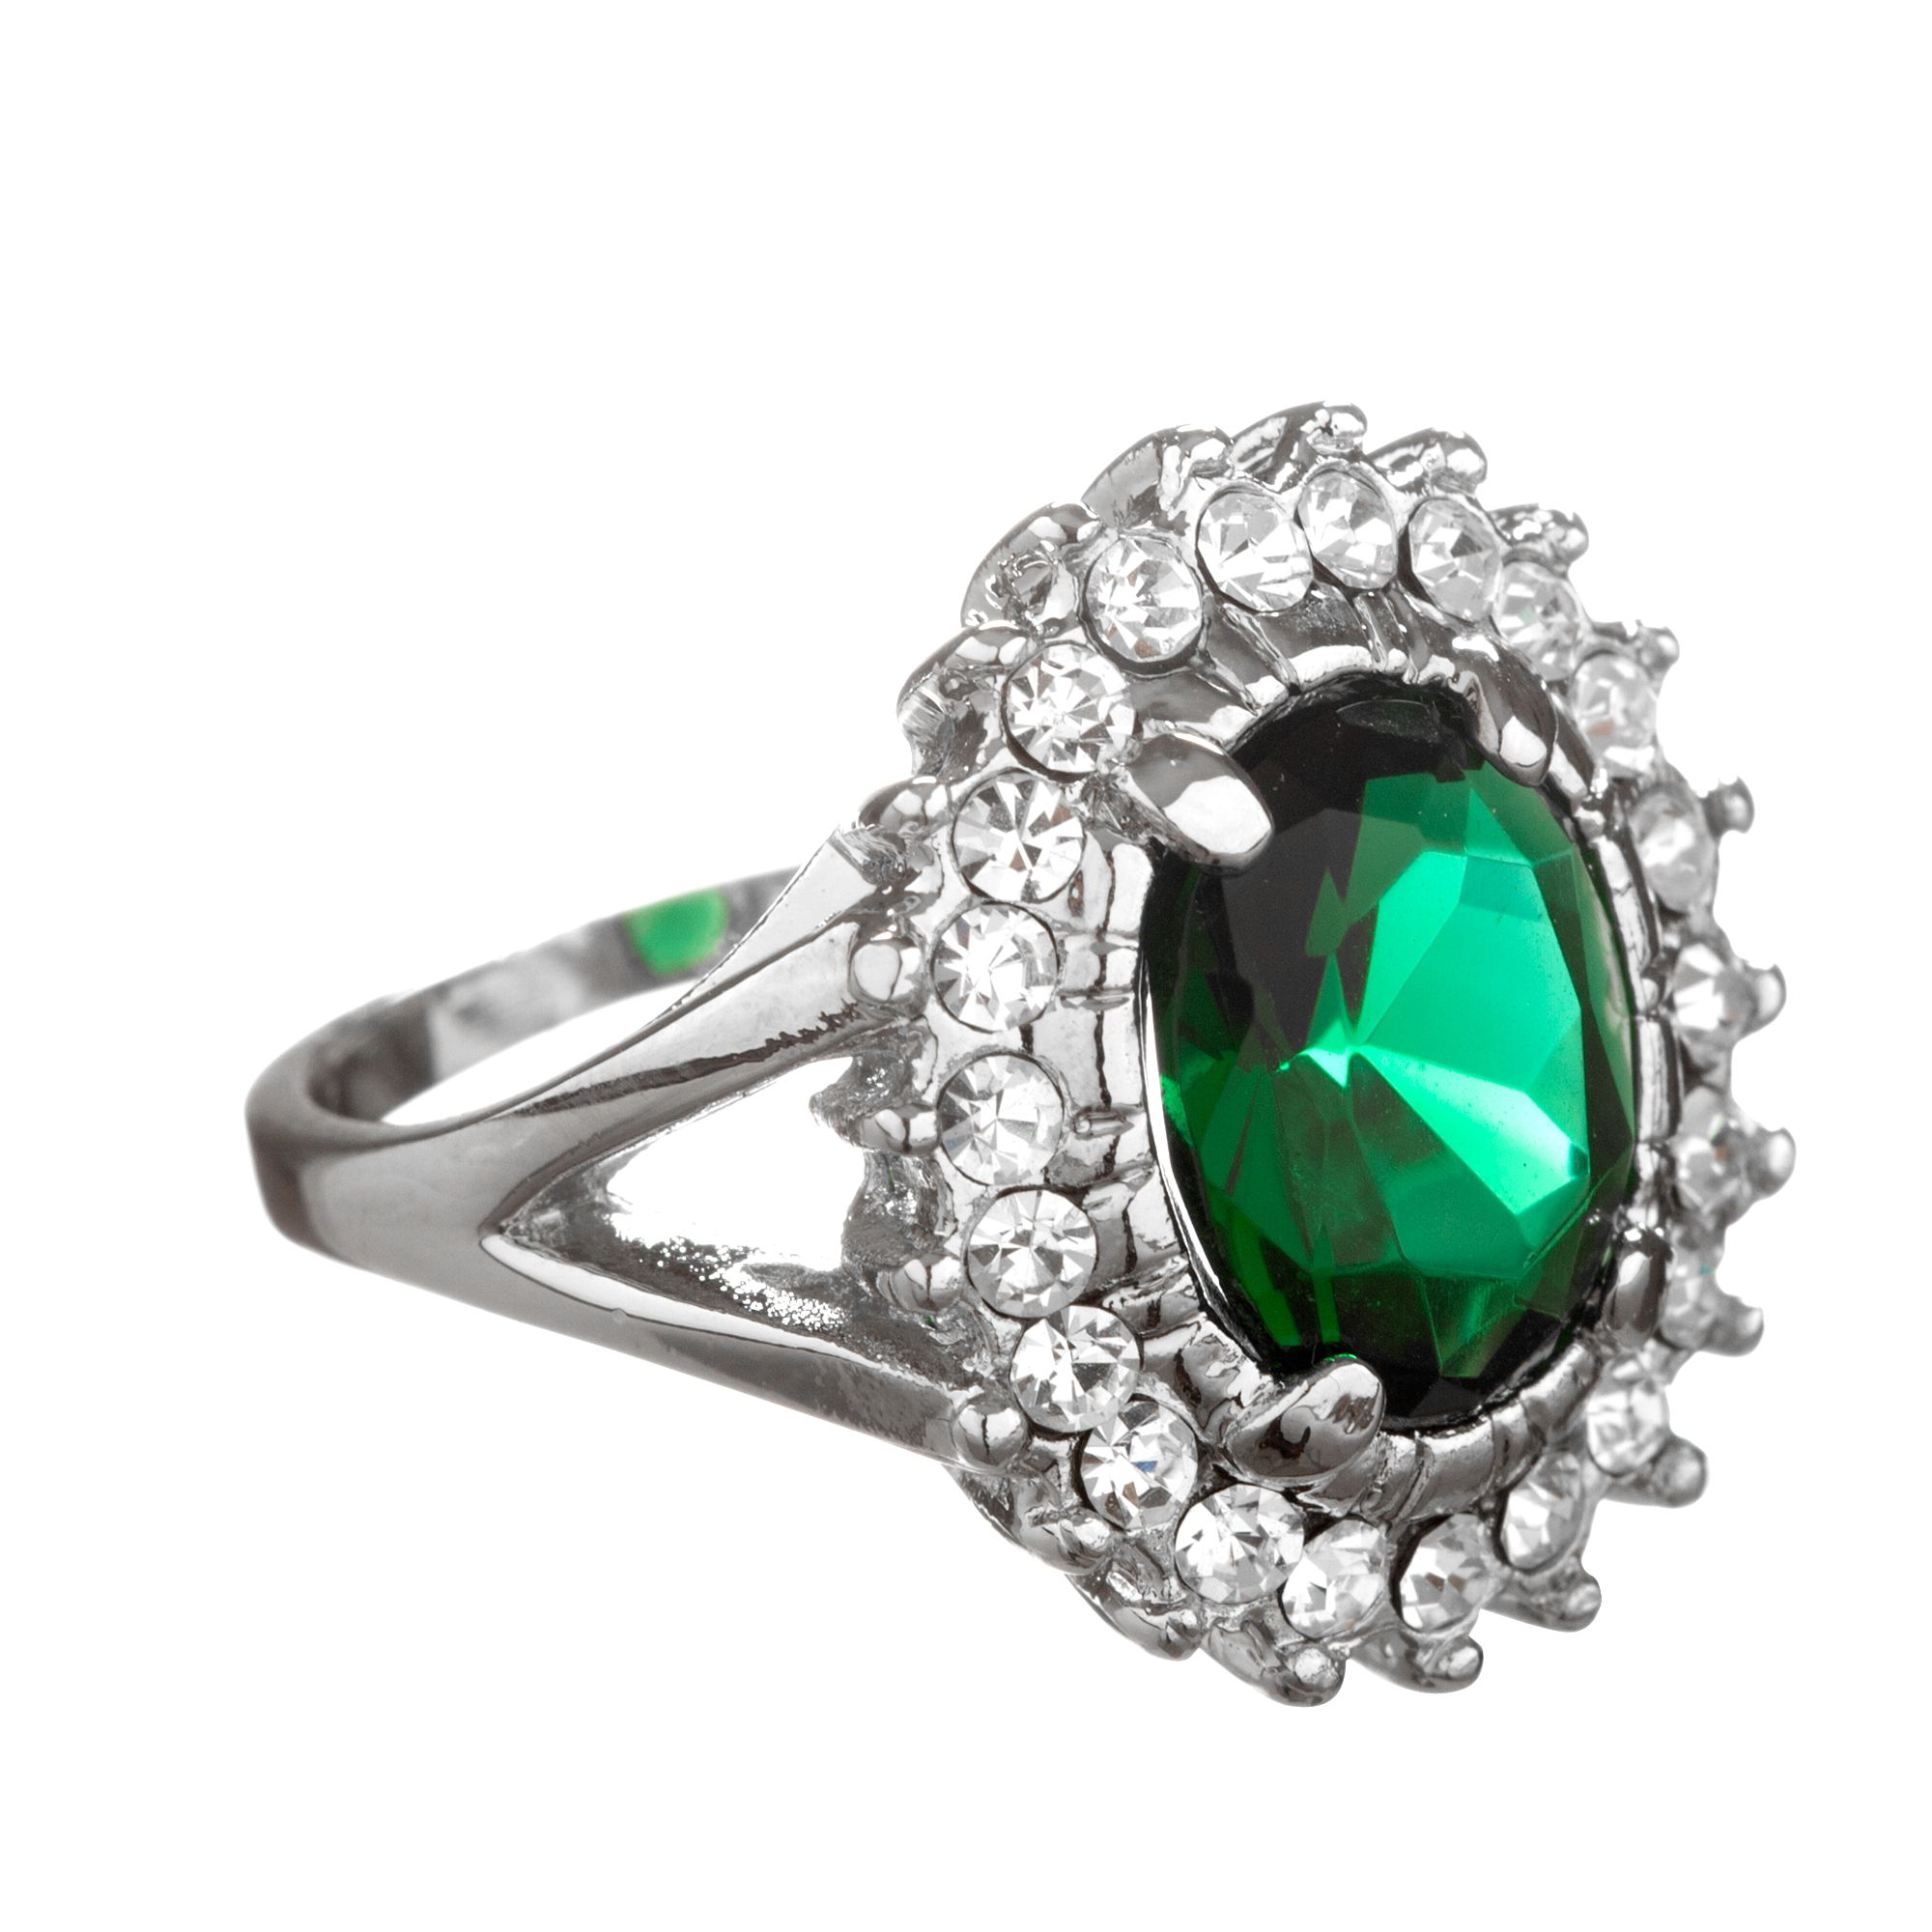 f rings by g product ladies emerald simon emeral jewels band anniversary diamond tashne